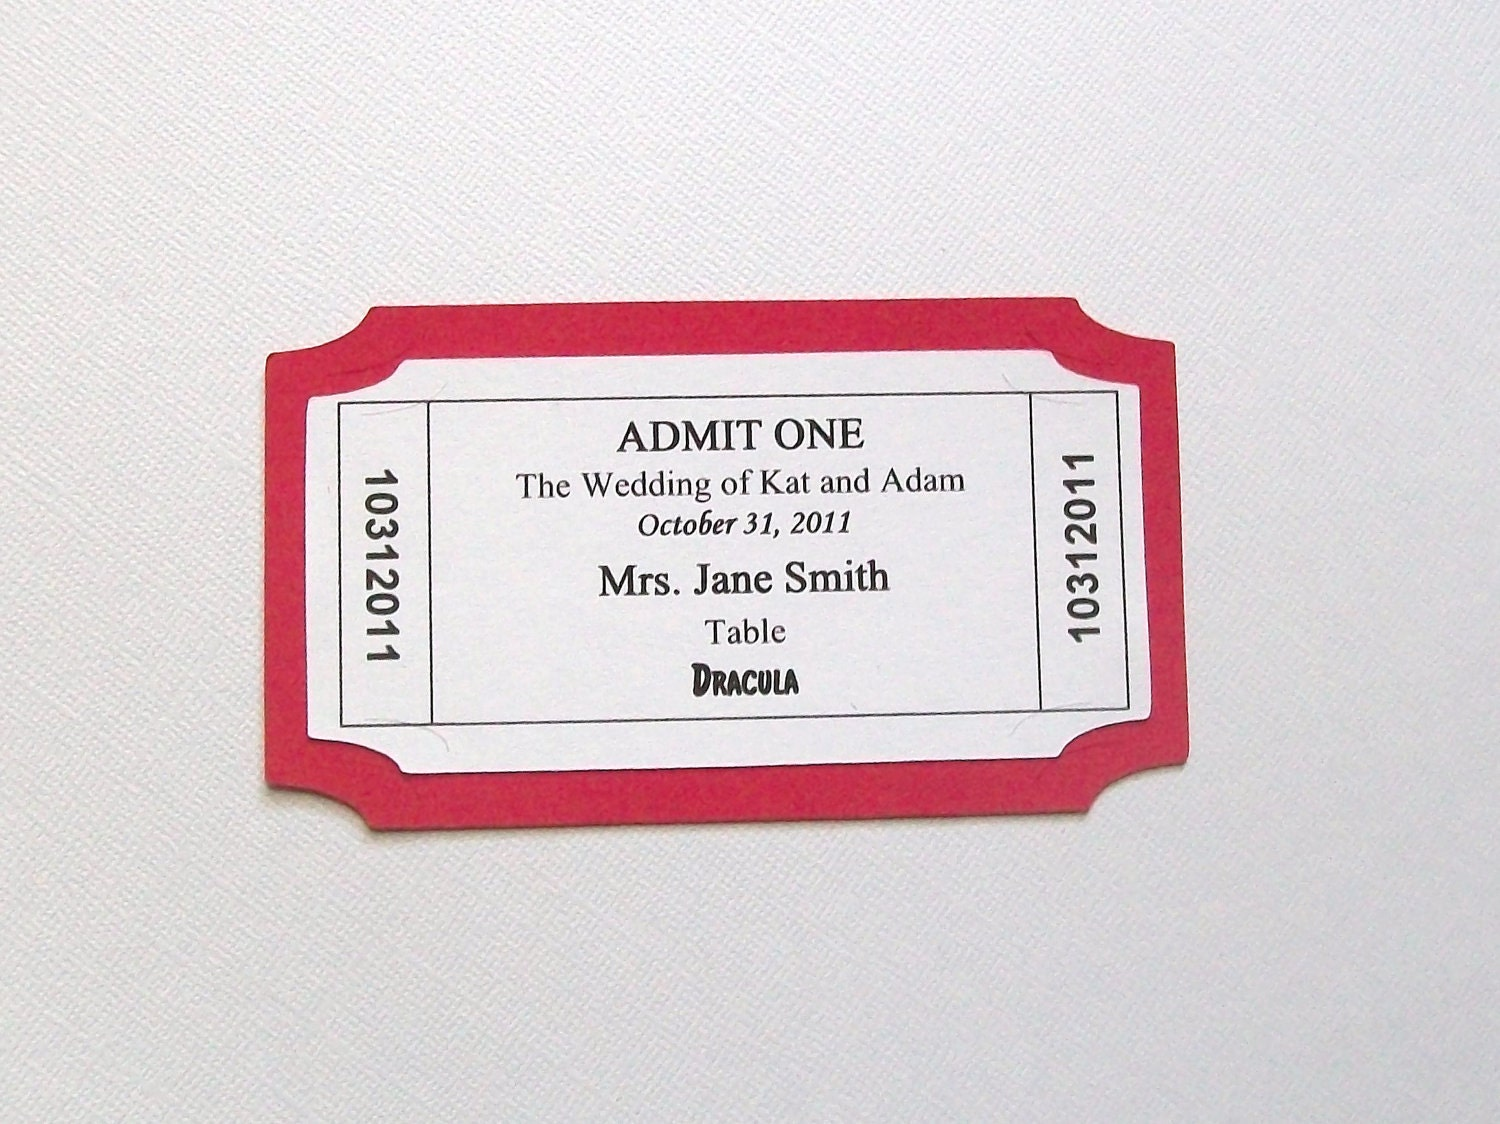 Customized movie ticket